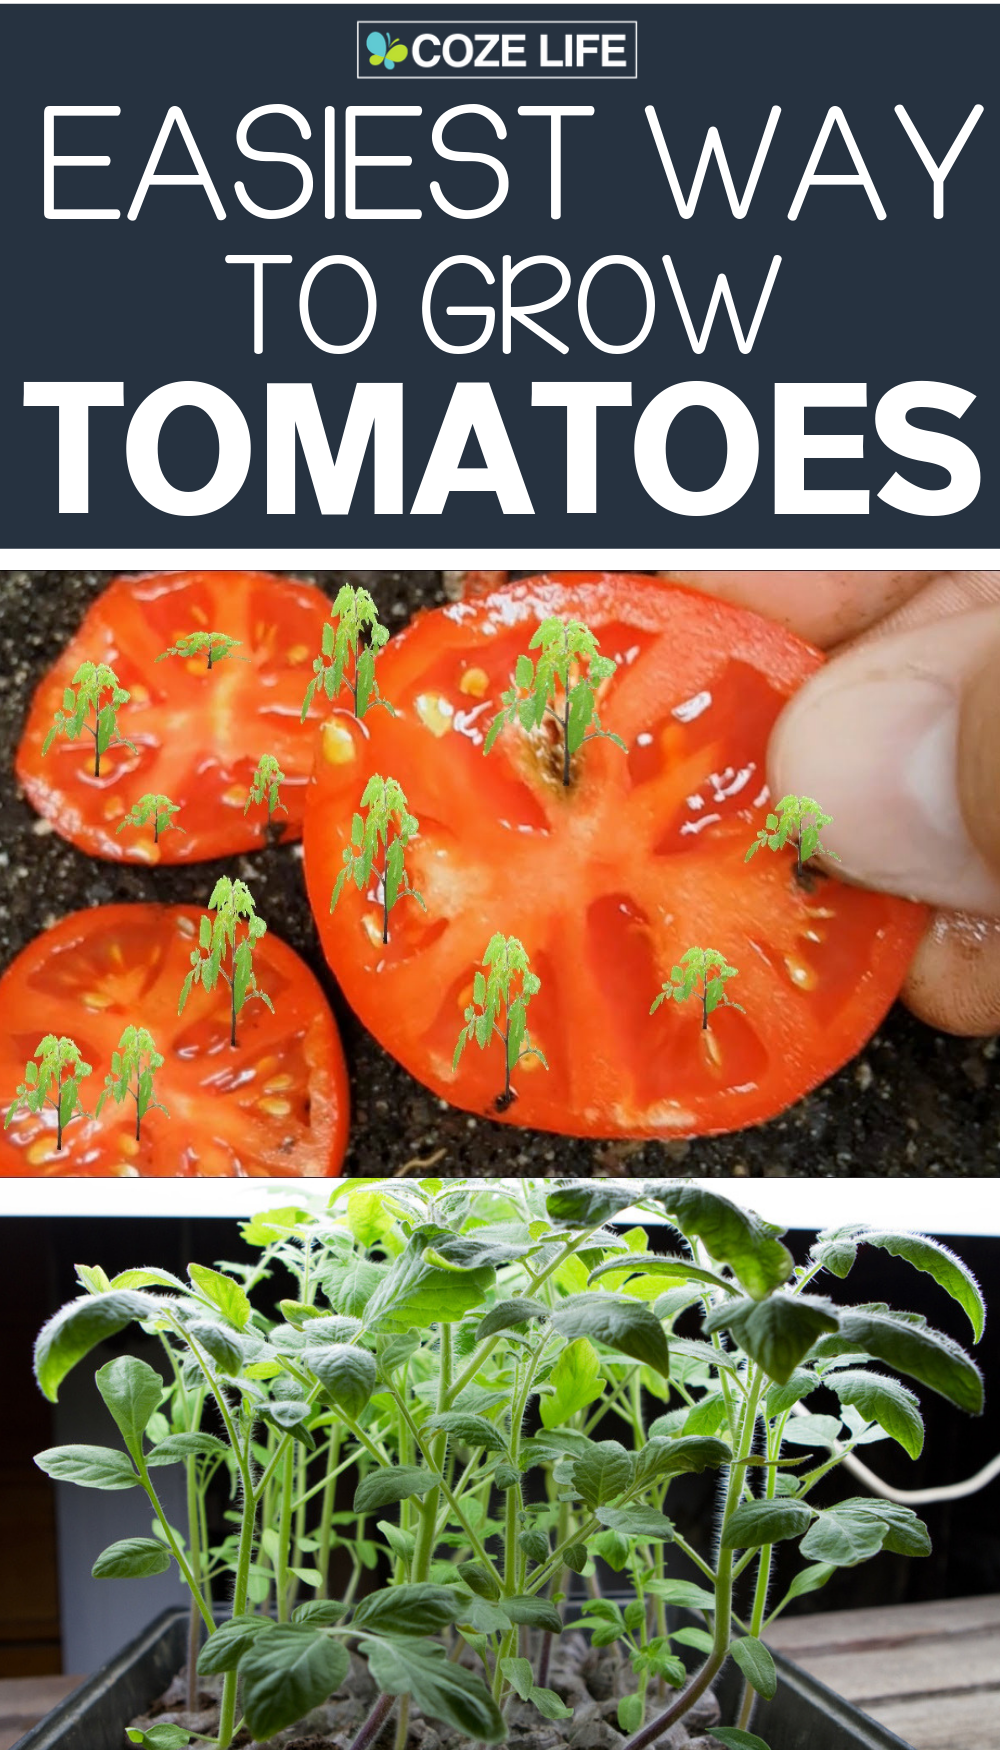 Easiest Way To Grow Tomatoes At Home Growing Tomatoes Tomato Seedlings Growing Vegetables